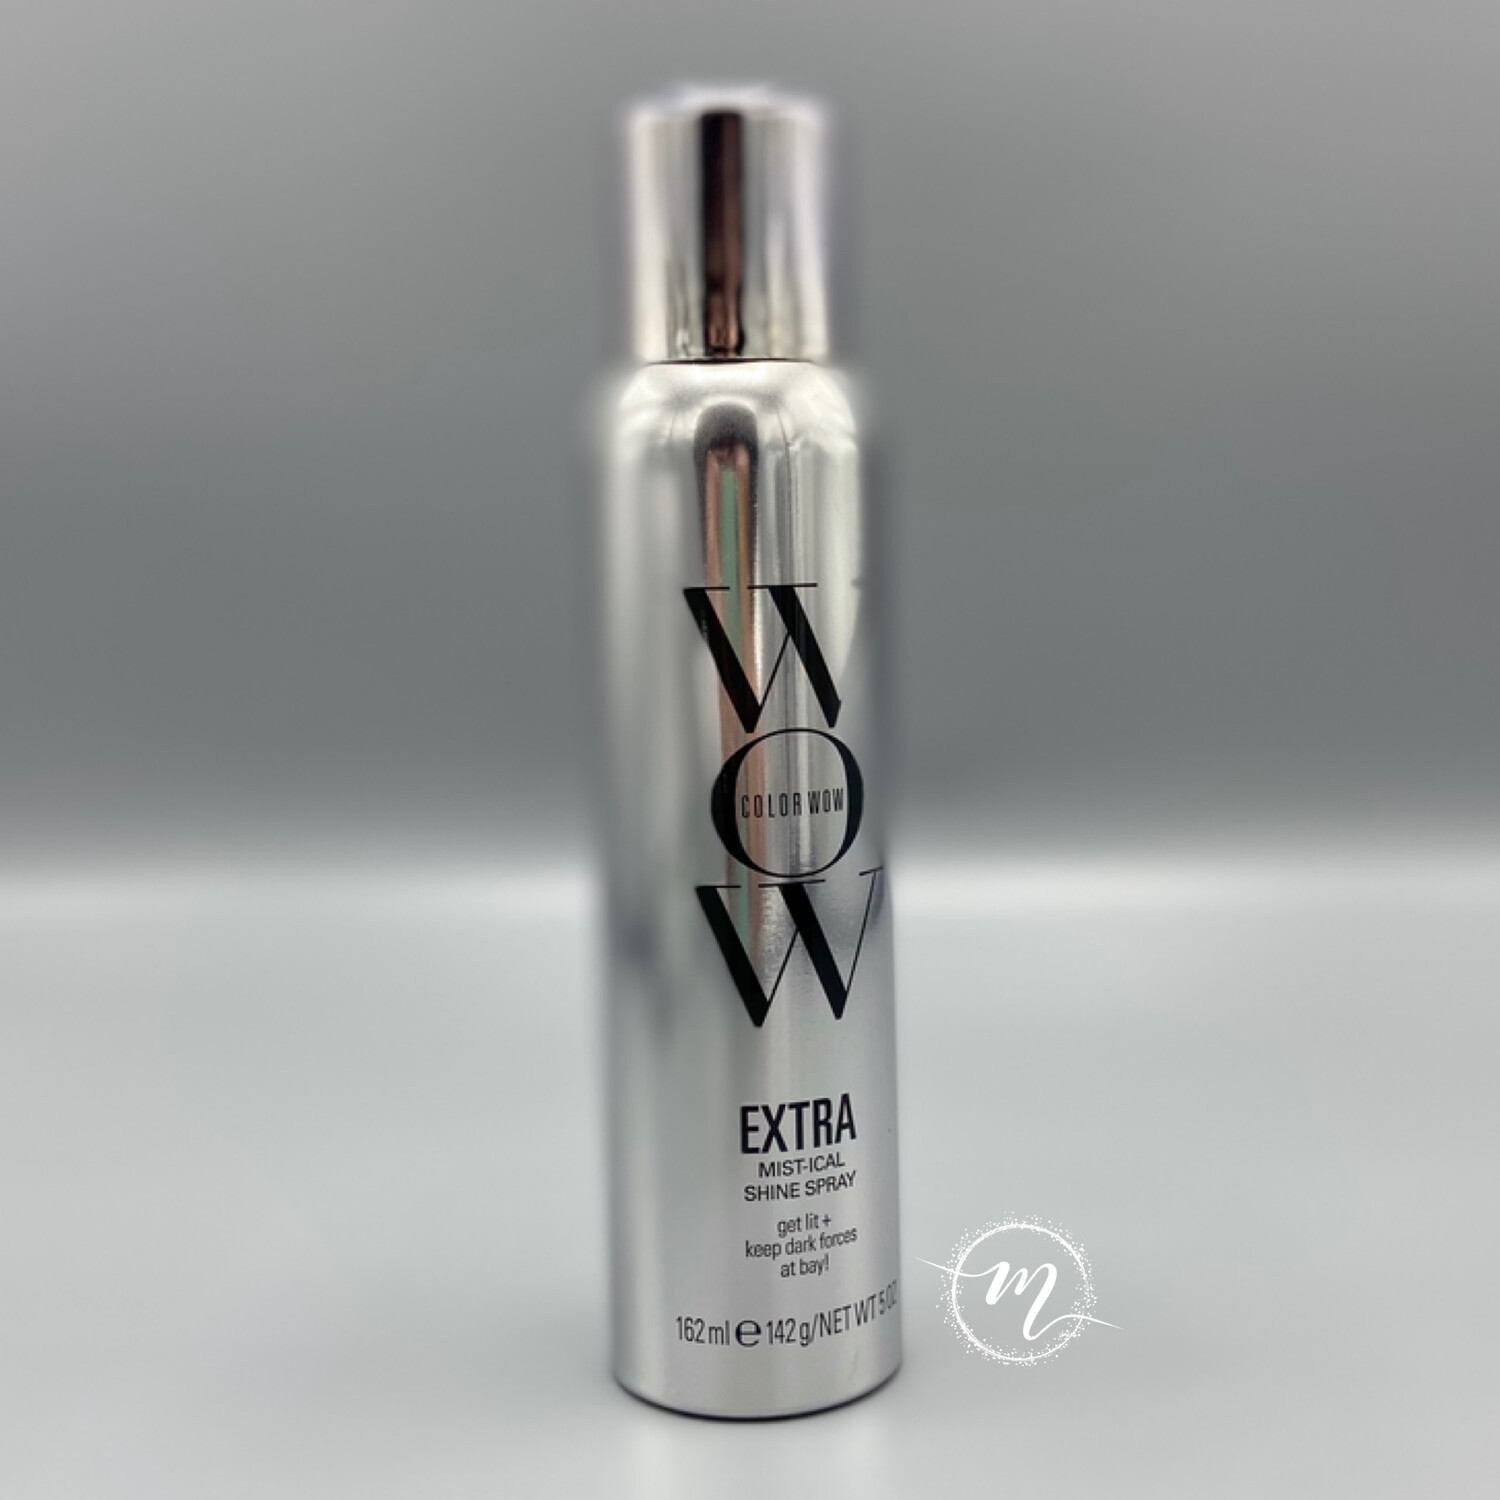 Spray Extra Mist-ical Shine / brillance & protection UV